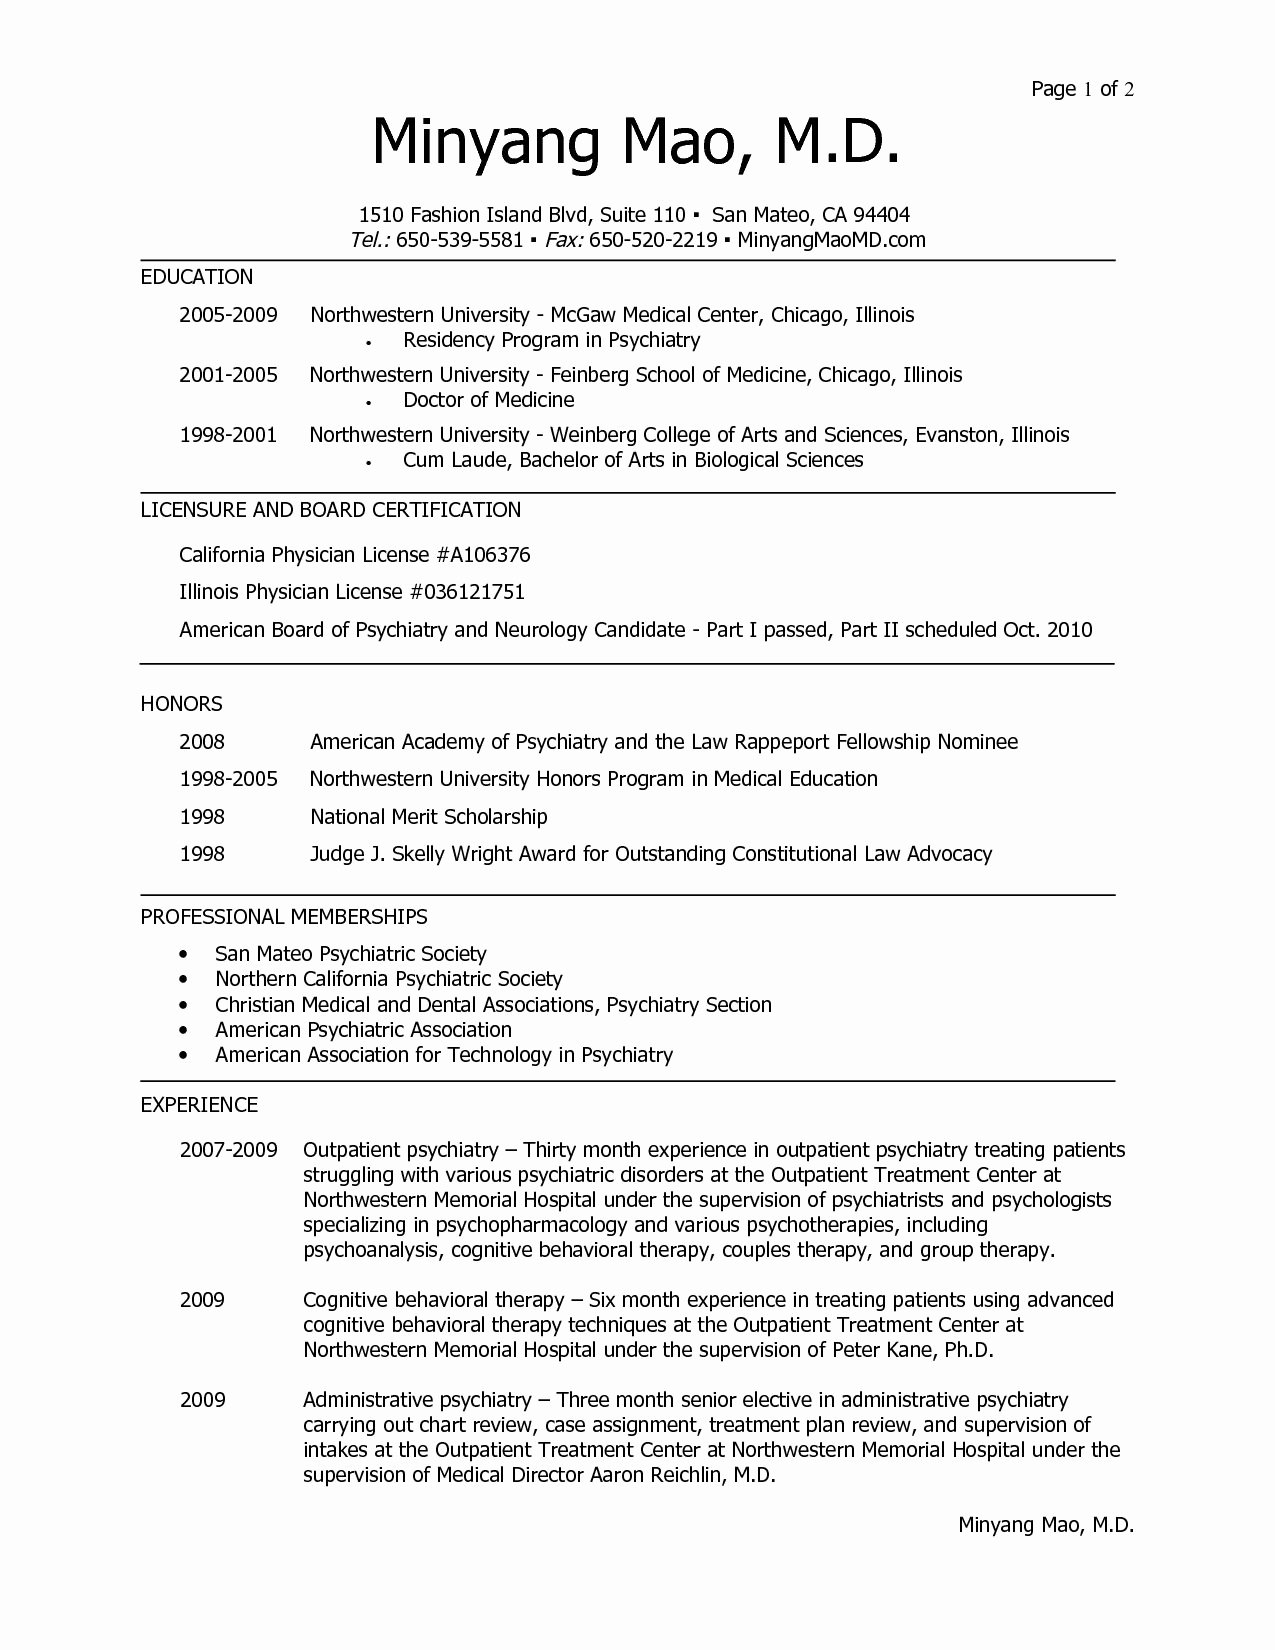 Medical Resume Template Free Luxury Medical School Resume Template Medical School Resume